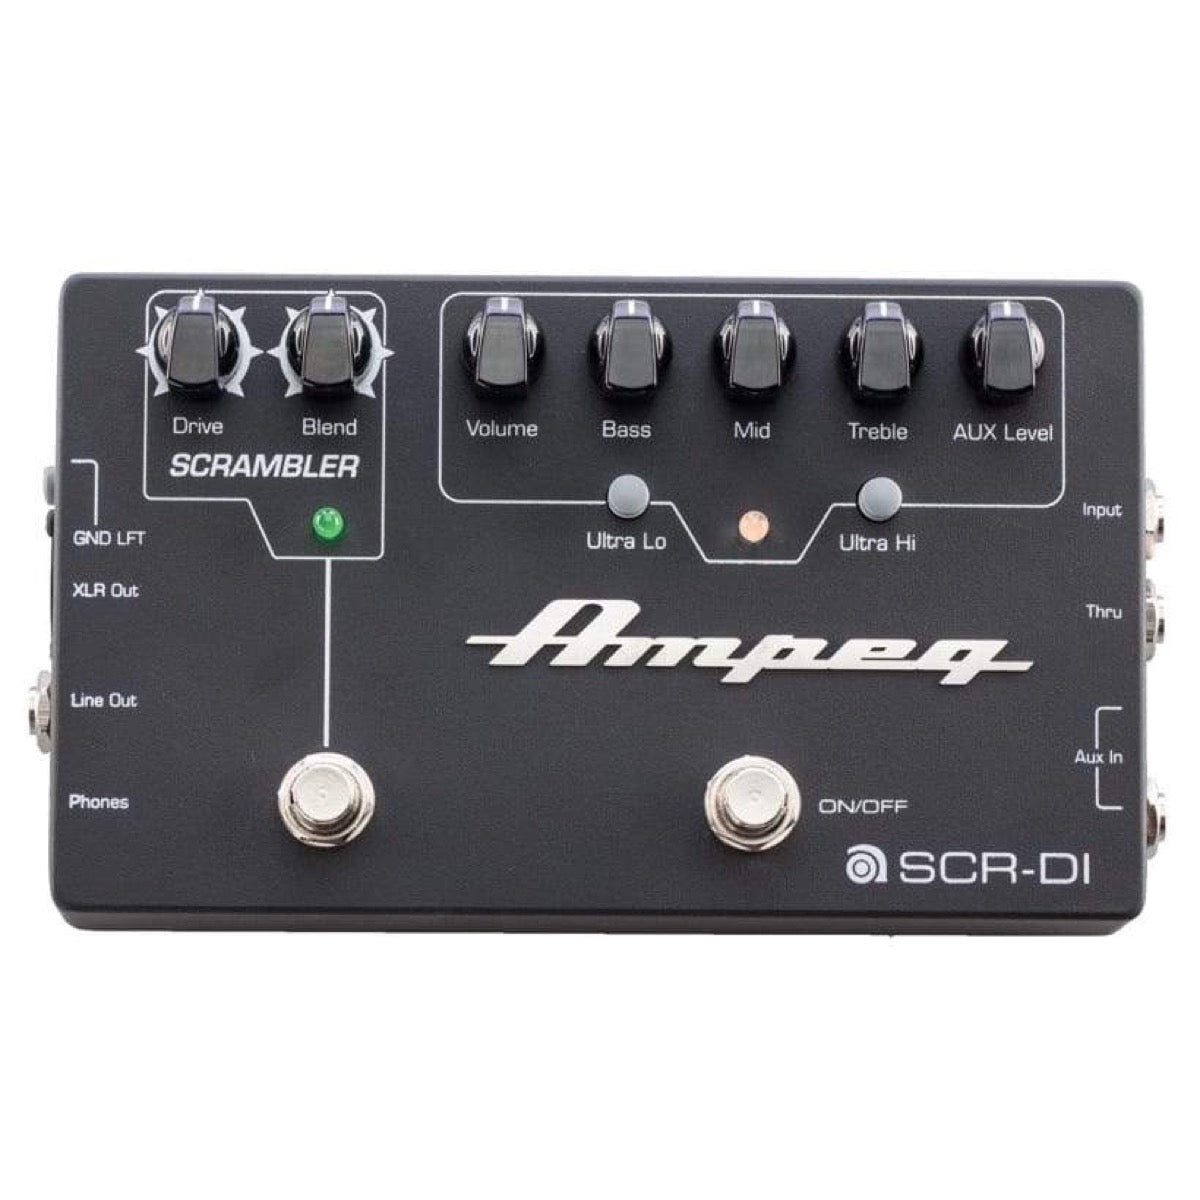 Ampeg SCR-DI Bass DI Direct Box with Scrambler Overdrive